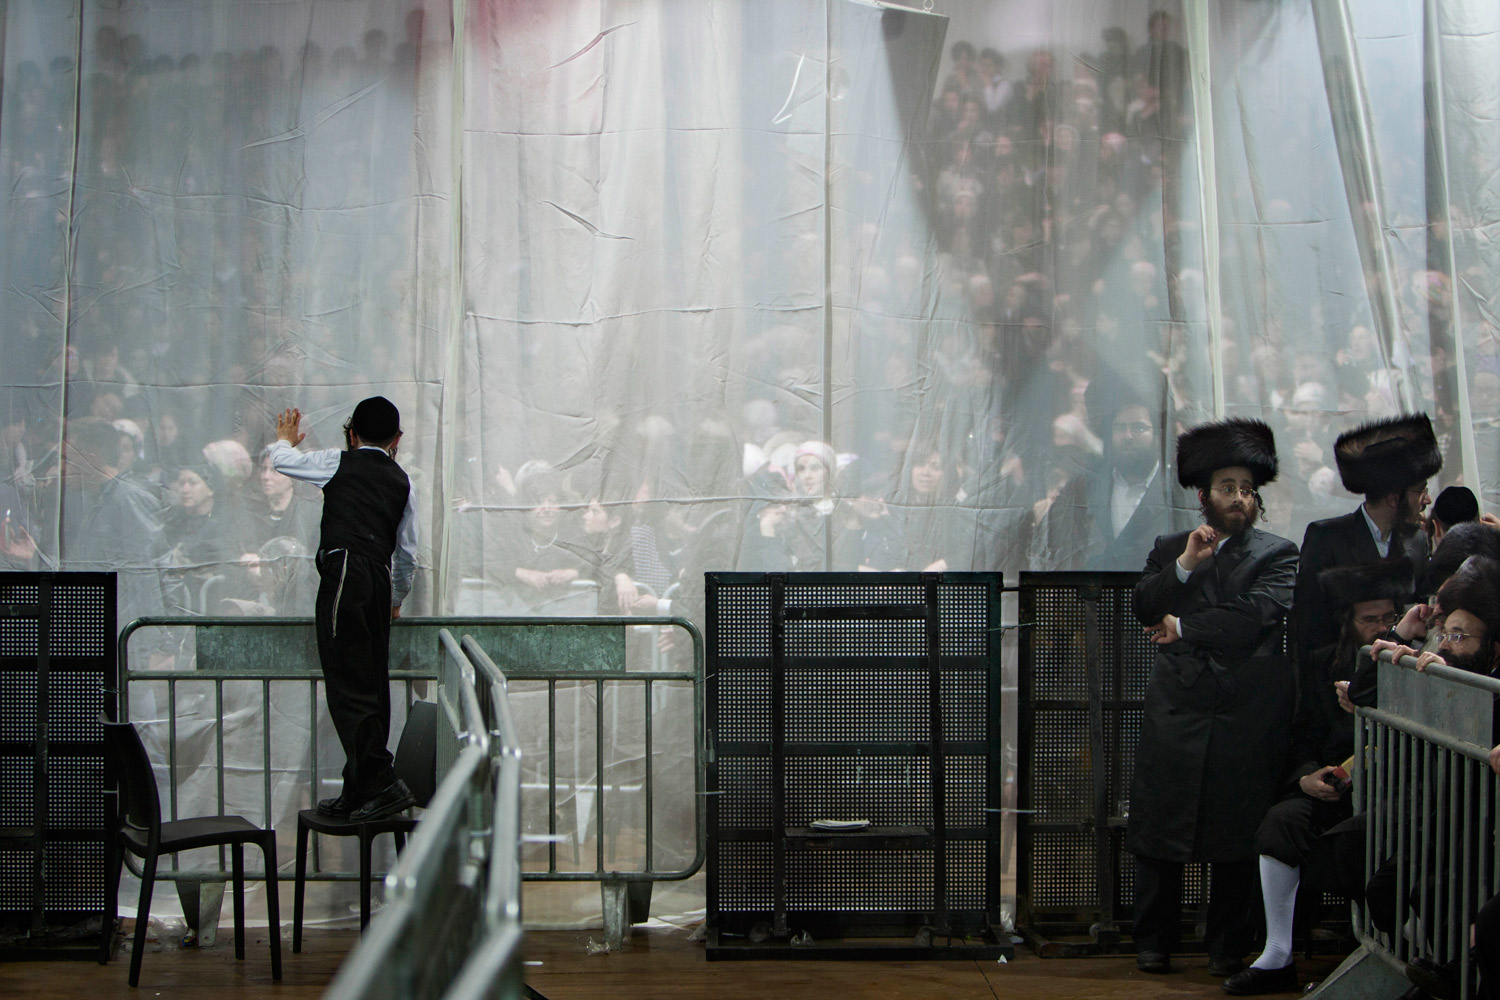 Feb. 14, 2012. Ultra-Orthodox Jews gather for the traditional Jewish wedding for Chananya Yom Tov Lipa, the great-grandson of the Rabbi of the Wiznitz Hasidic followers, in the Israeli town of Petah Tikva near Tel Aviv. The gauze curtain is used to separate men and women during the wedding.